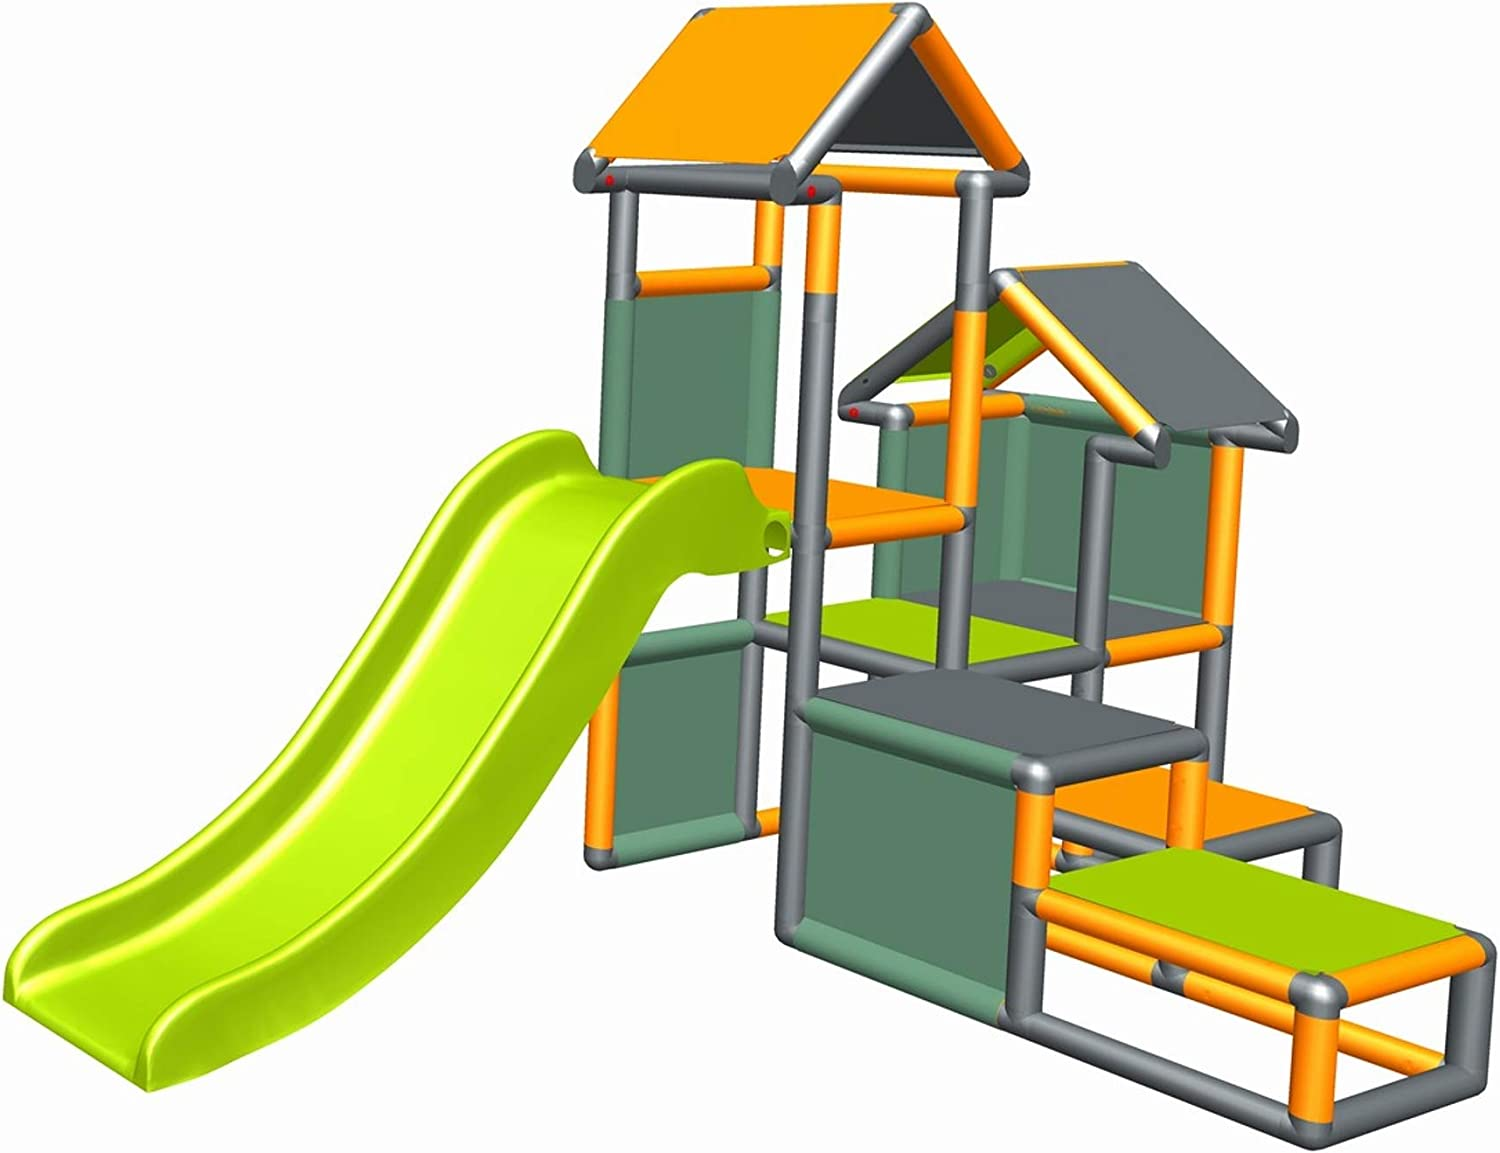 move and stic Play Tower Climbing Frame Gesa with Slide for Small Children with Crawling Tunnel Mas 7 Colours Multicolor